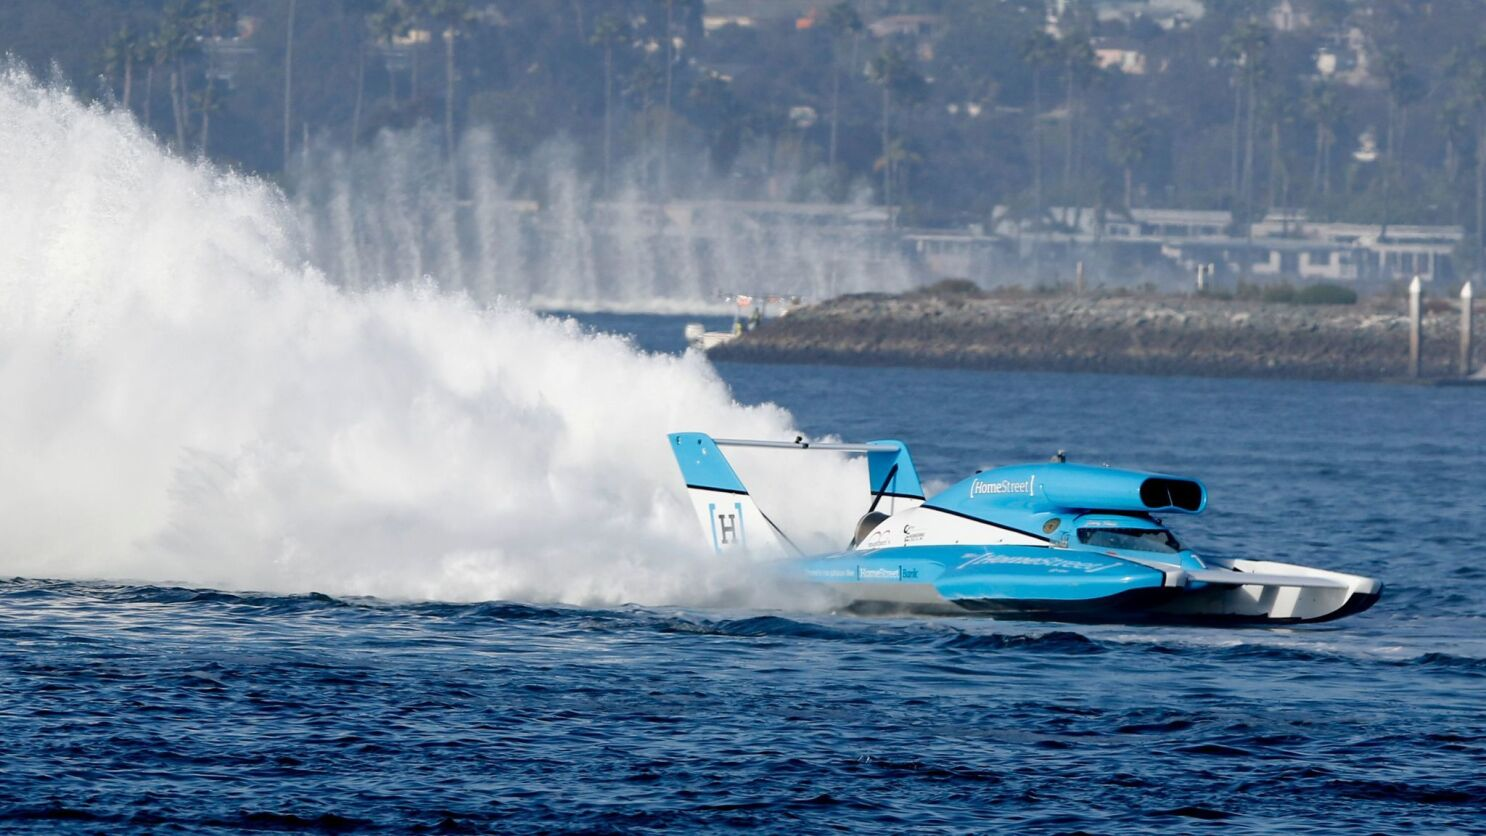 San Diego Bayfair powerboat races will be roaring across Mission Bay